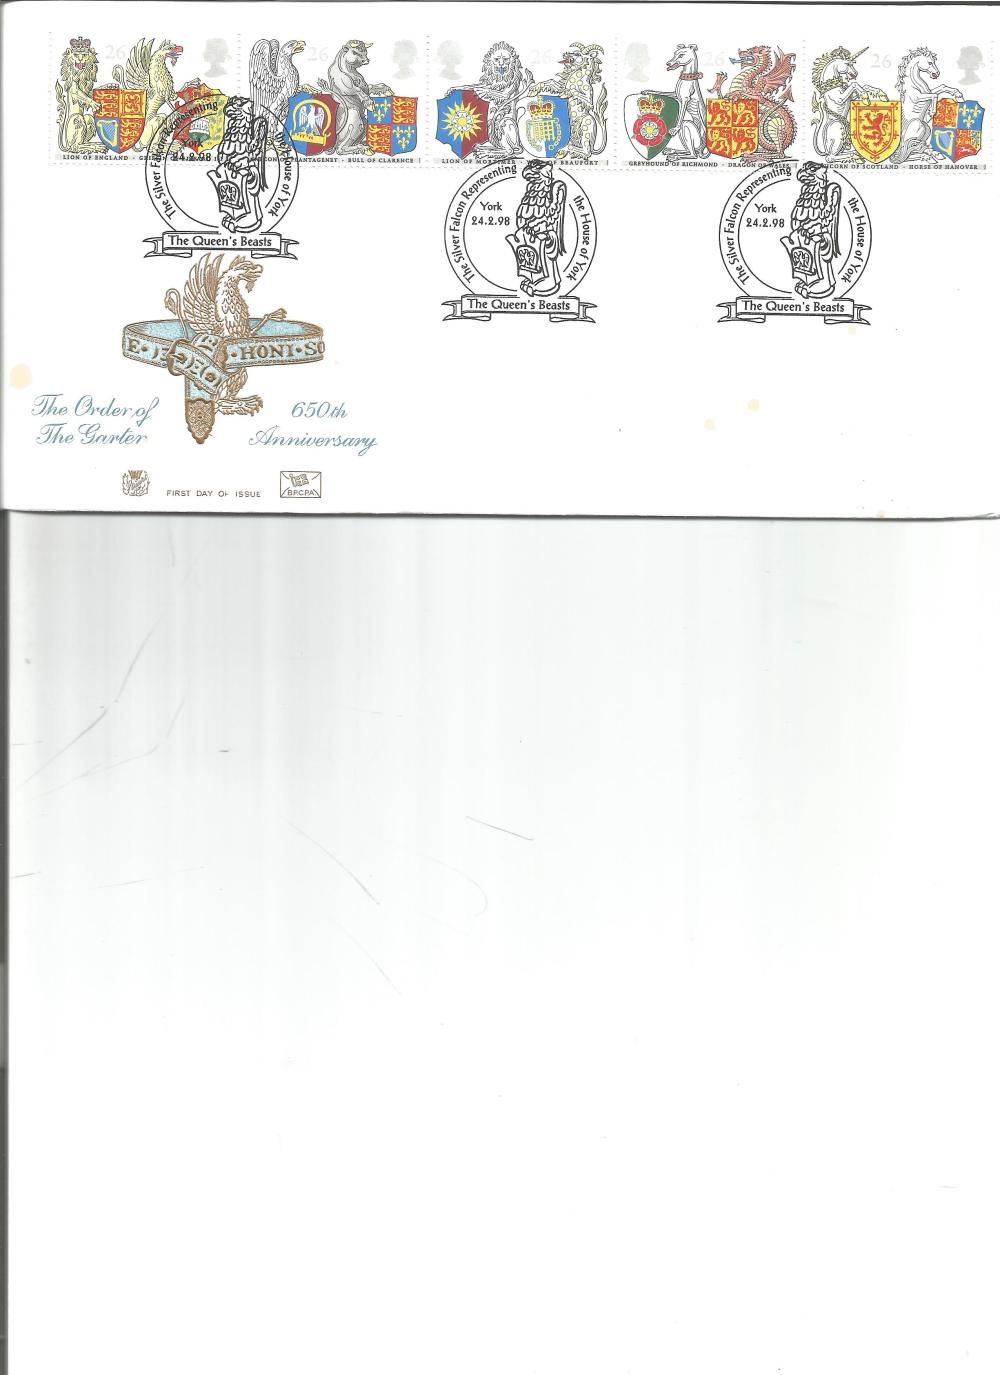 FDC The Order of the Garter 650th Anniversary c/w set of five commemorative stamps triple PM The